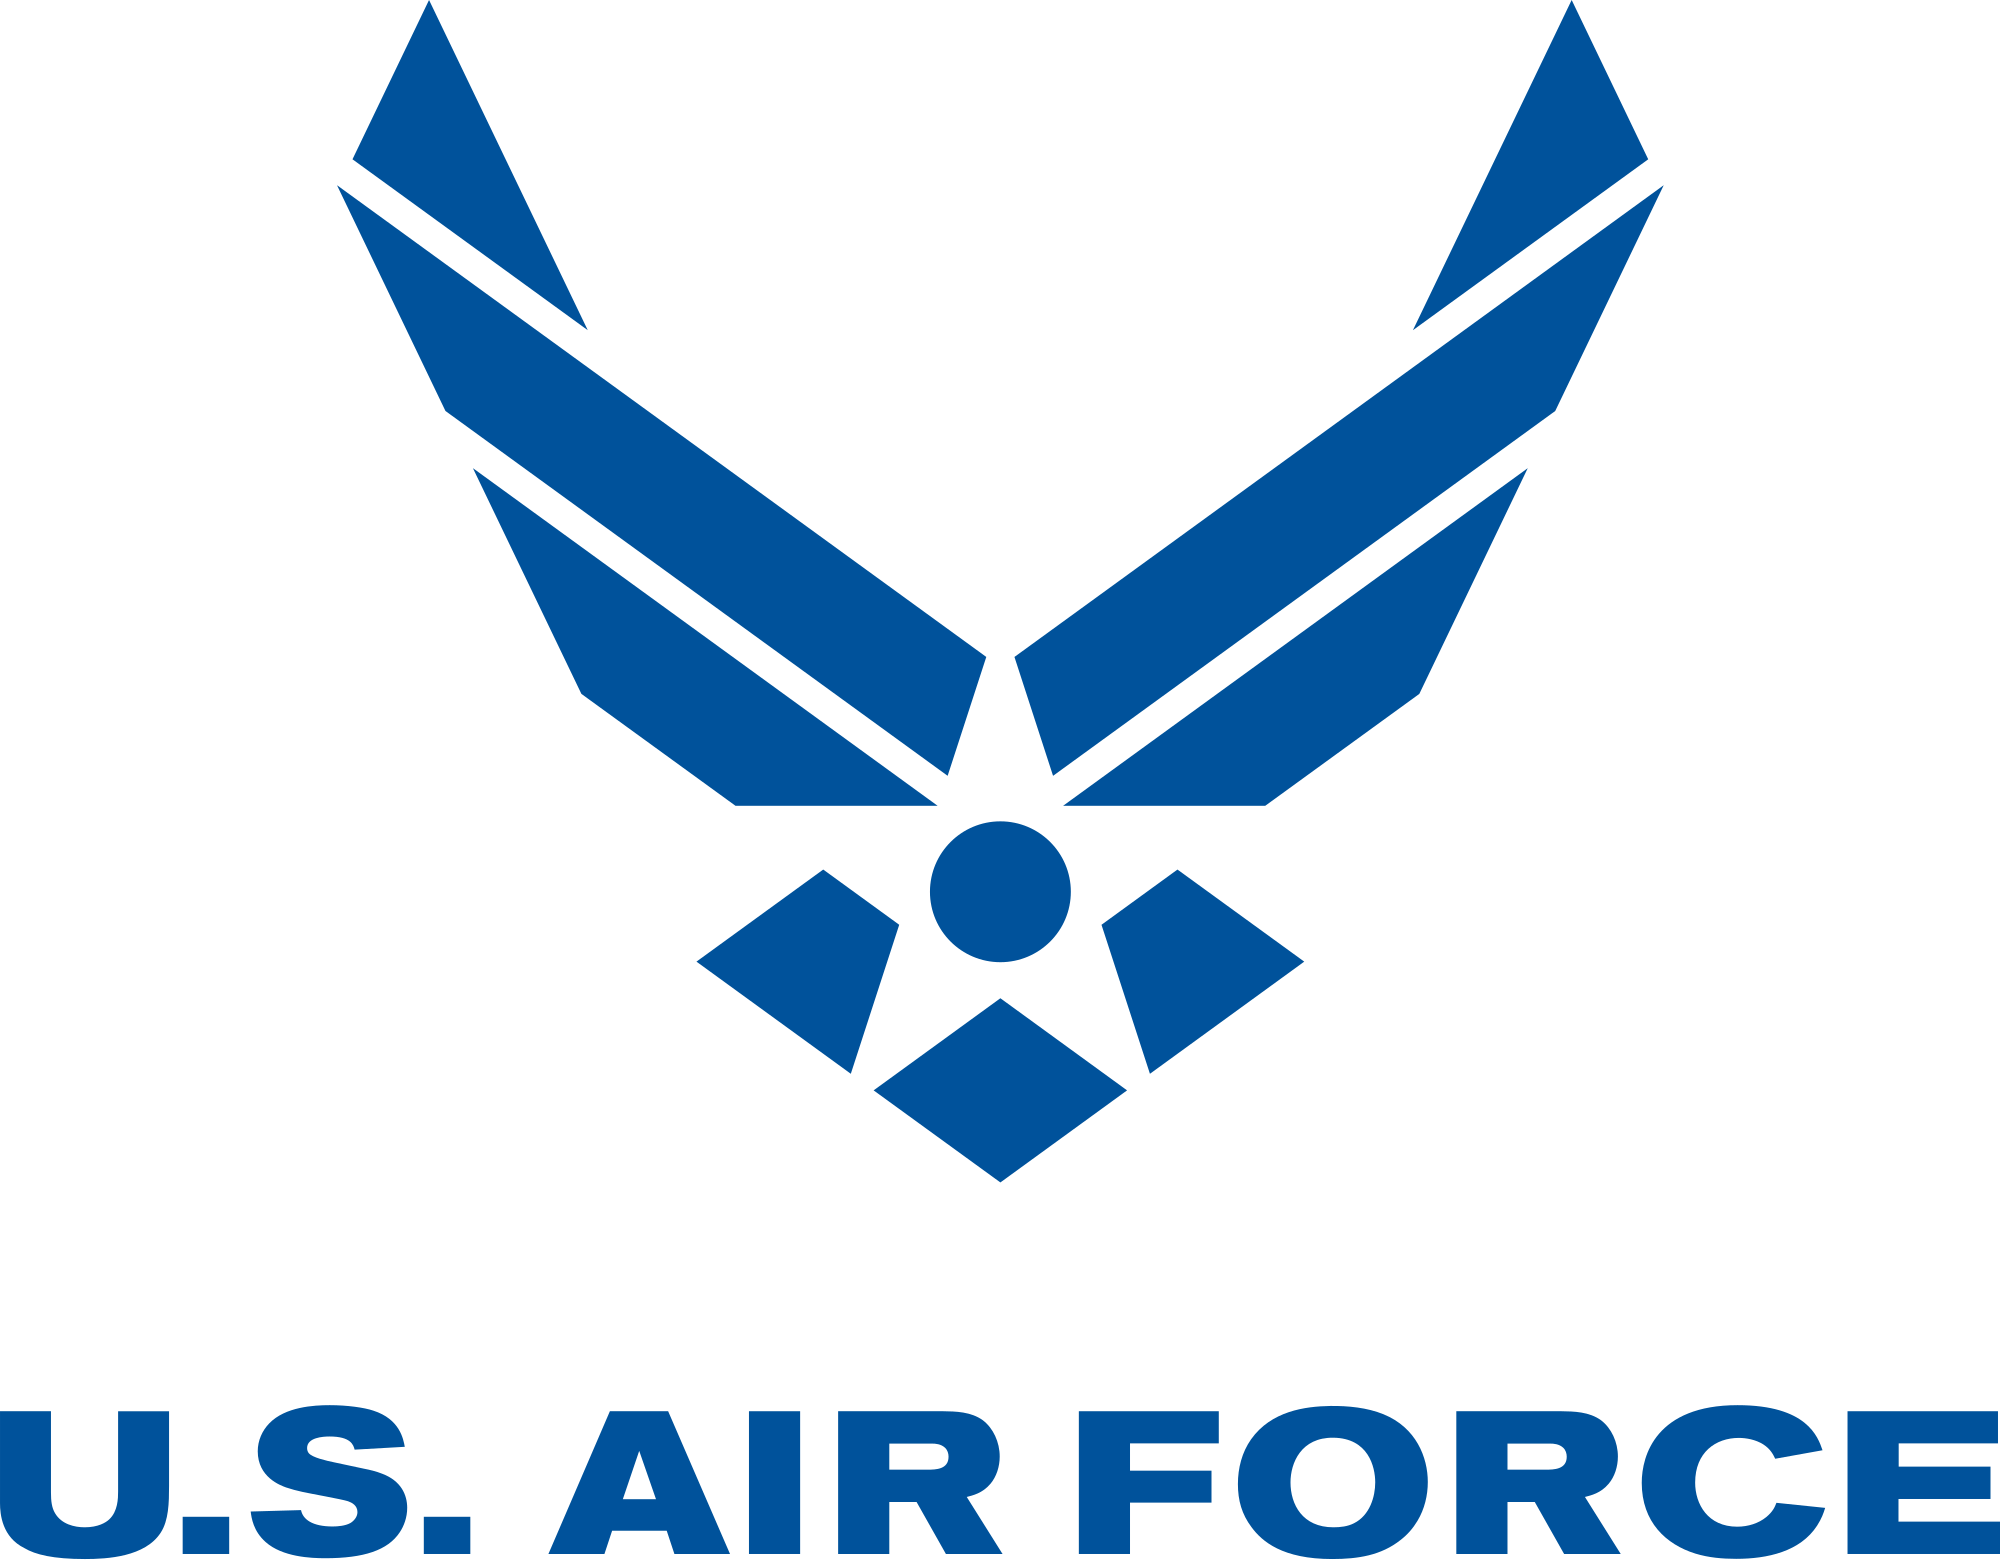 US Airforce.png